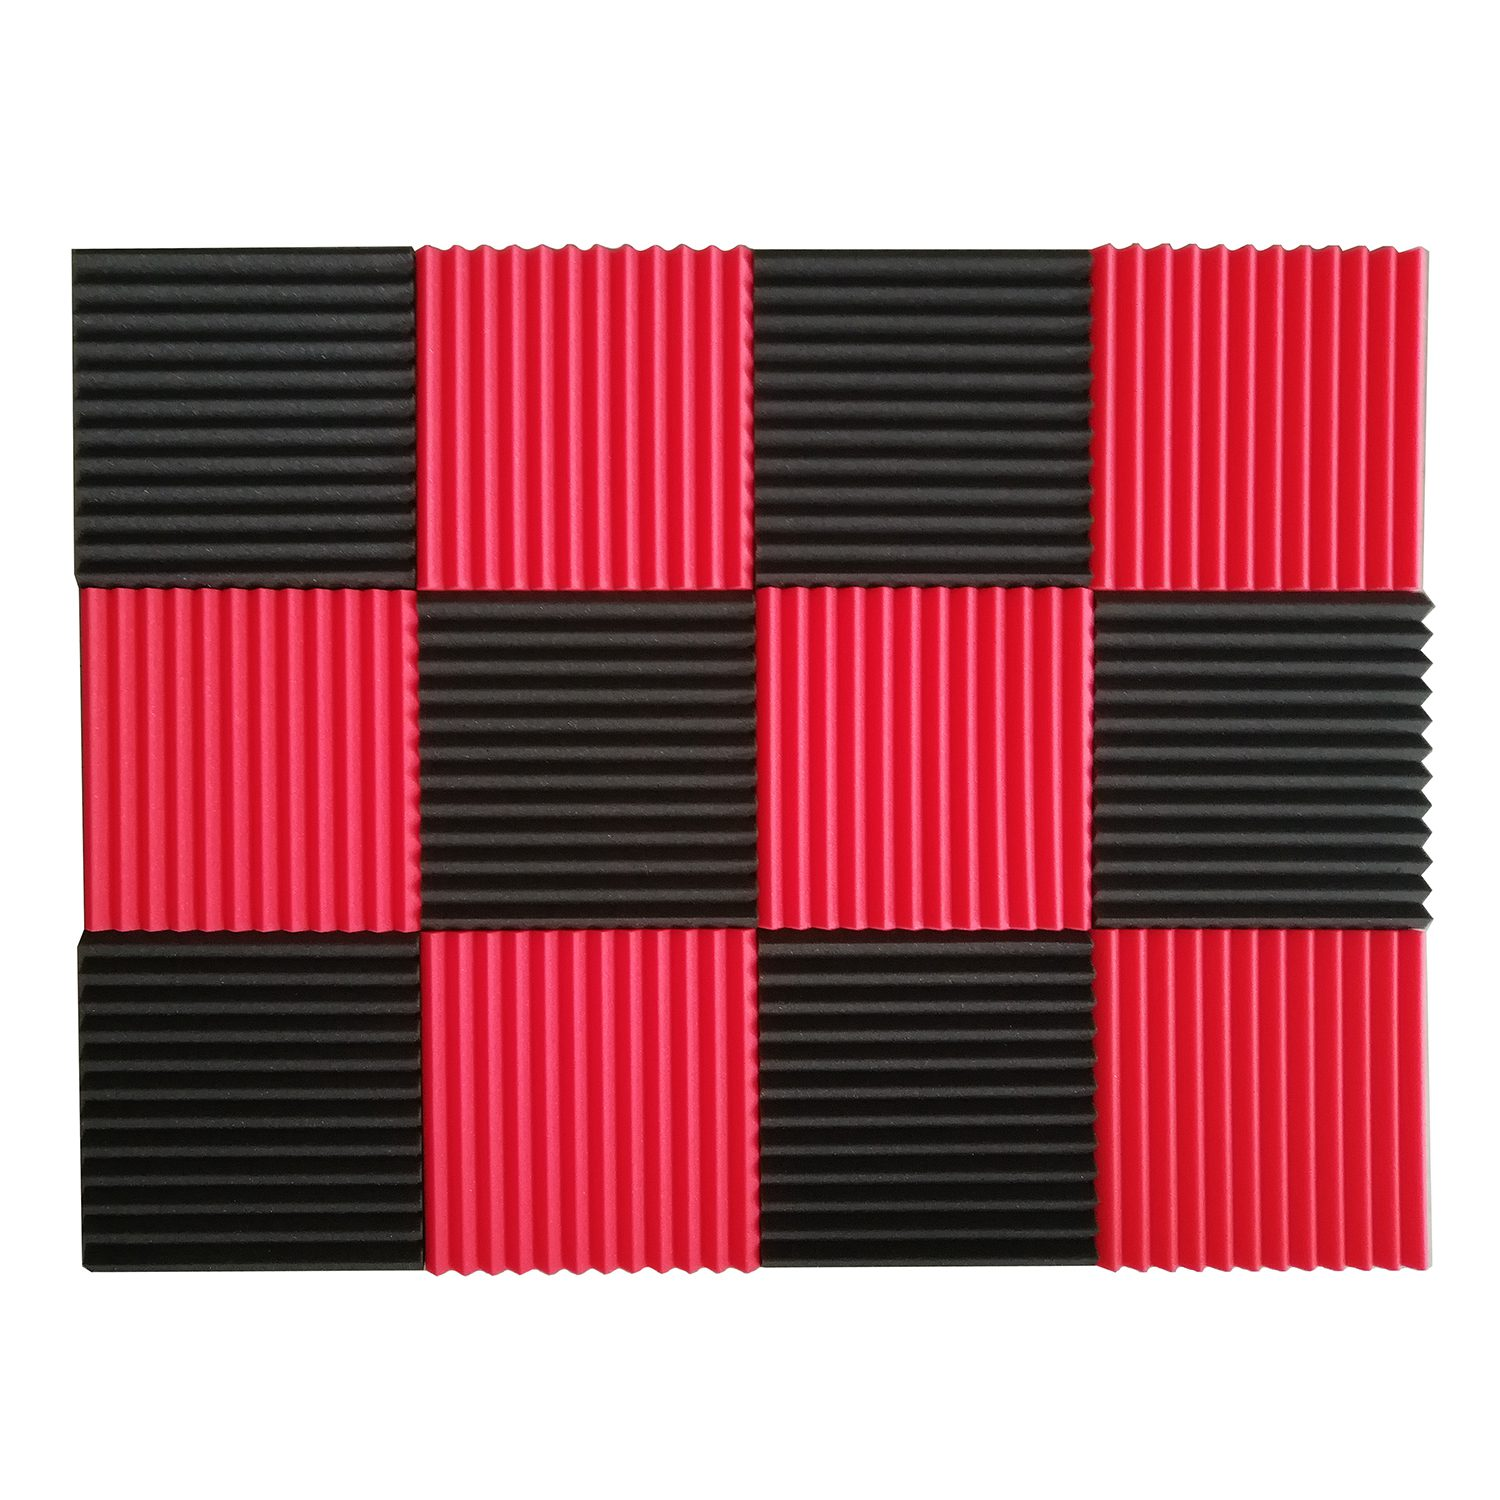 WSFS Hot 12 Pcs Acoustic Panels Soundproofing Foam Acoustic Tiles Studio Foam Sound Wedges 1inch X 12 Inch X 12 Inch